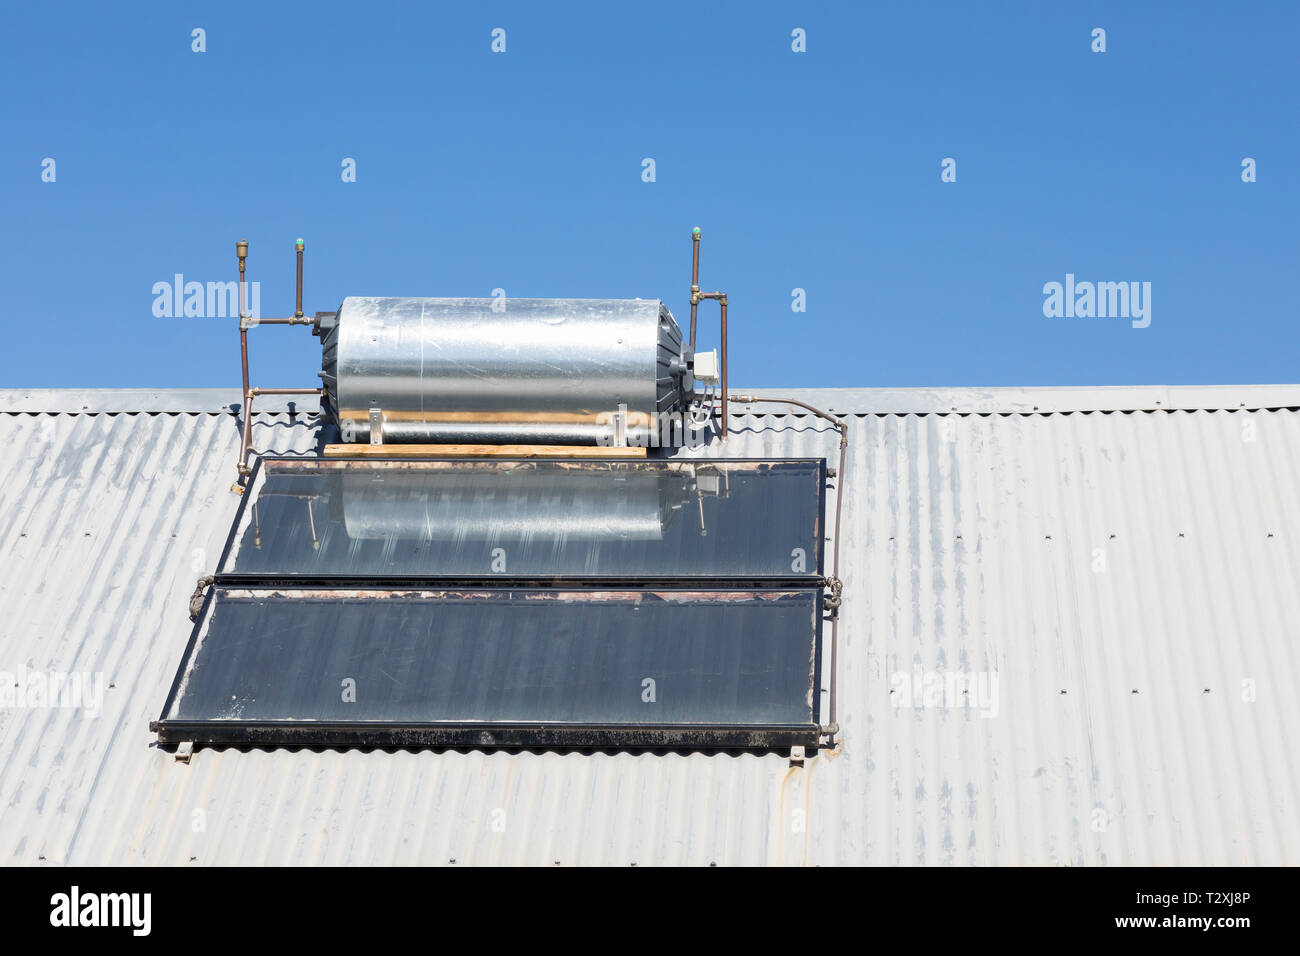 Roof mounted, rooftop, domestic solar hot water geyser with photovoltaic panels and convertor, renewable, sustainable, alternative, eco-friendly energ - Stock Image